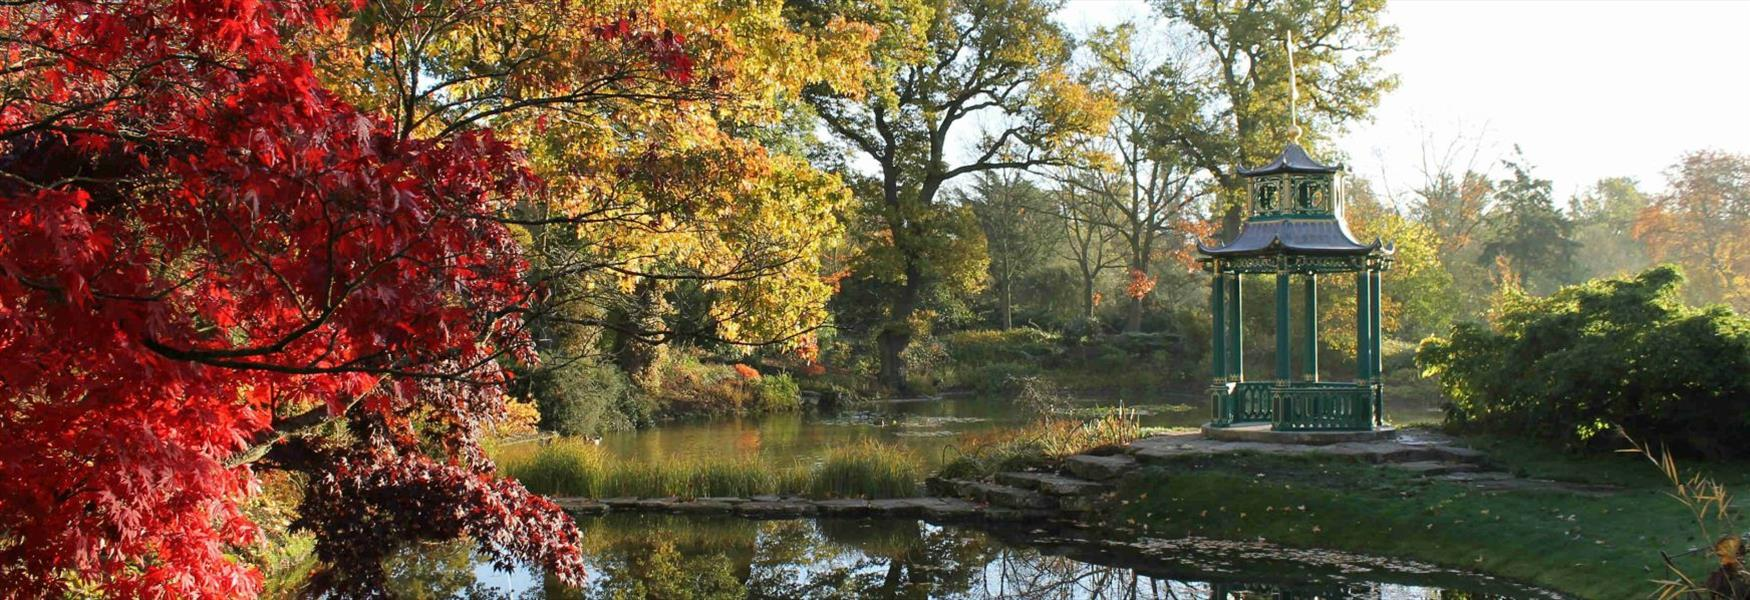 Autumn at Cliveden